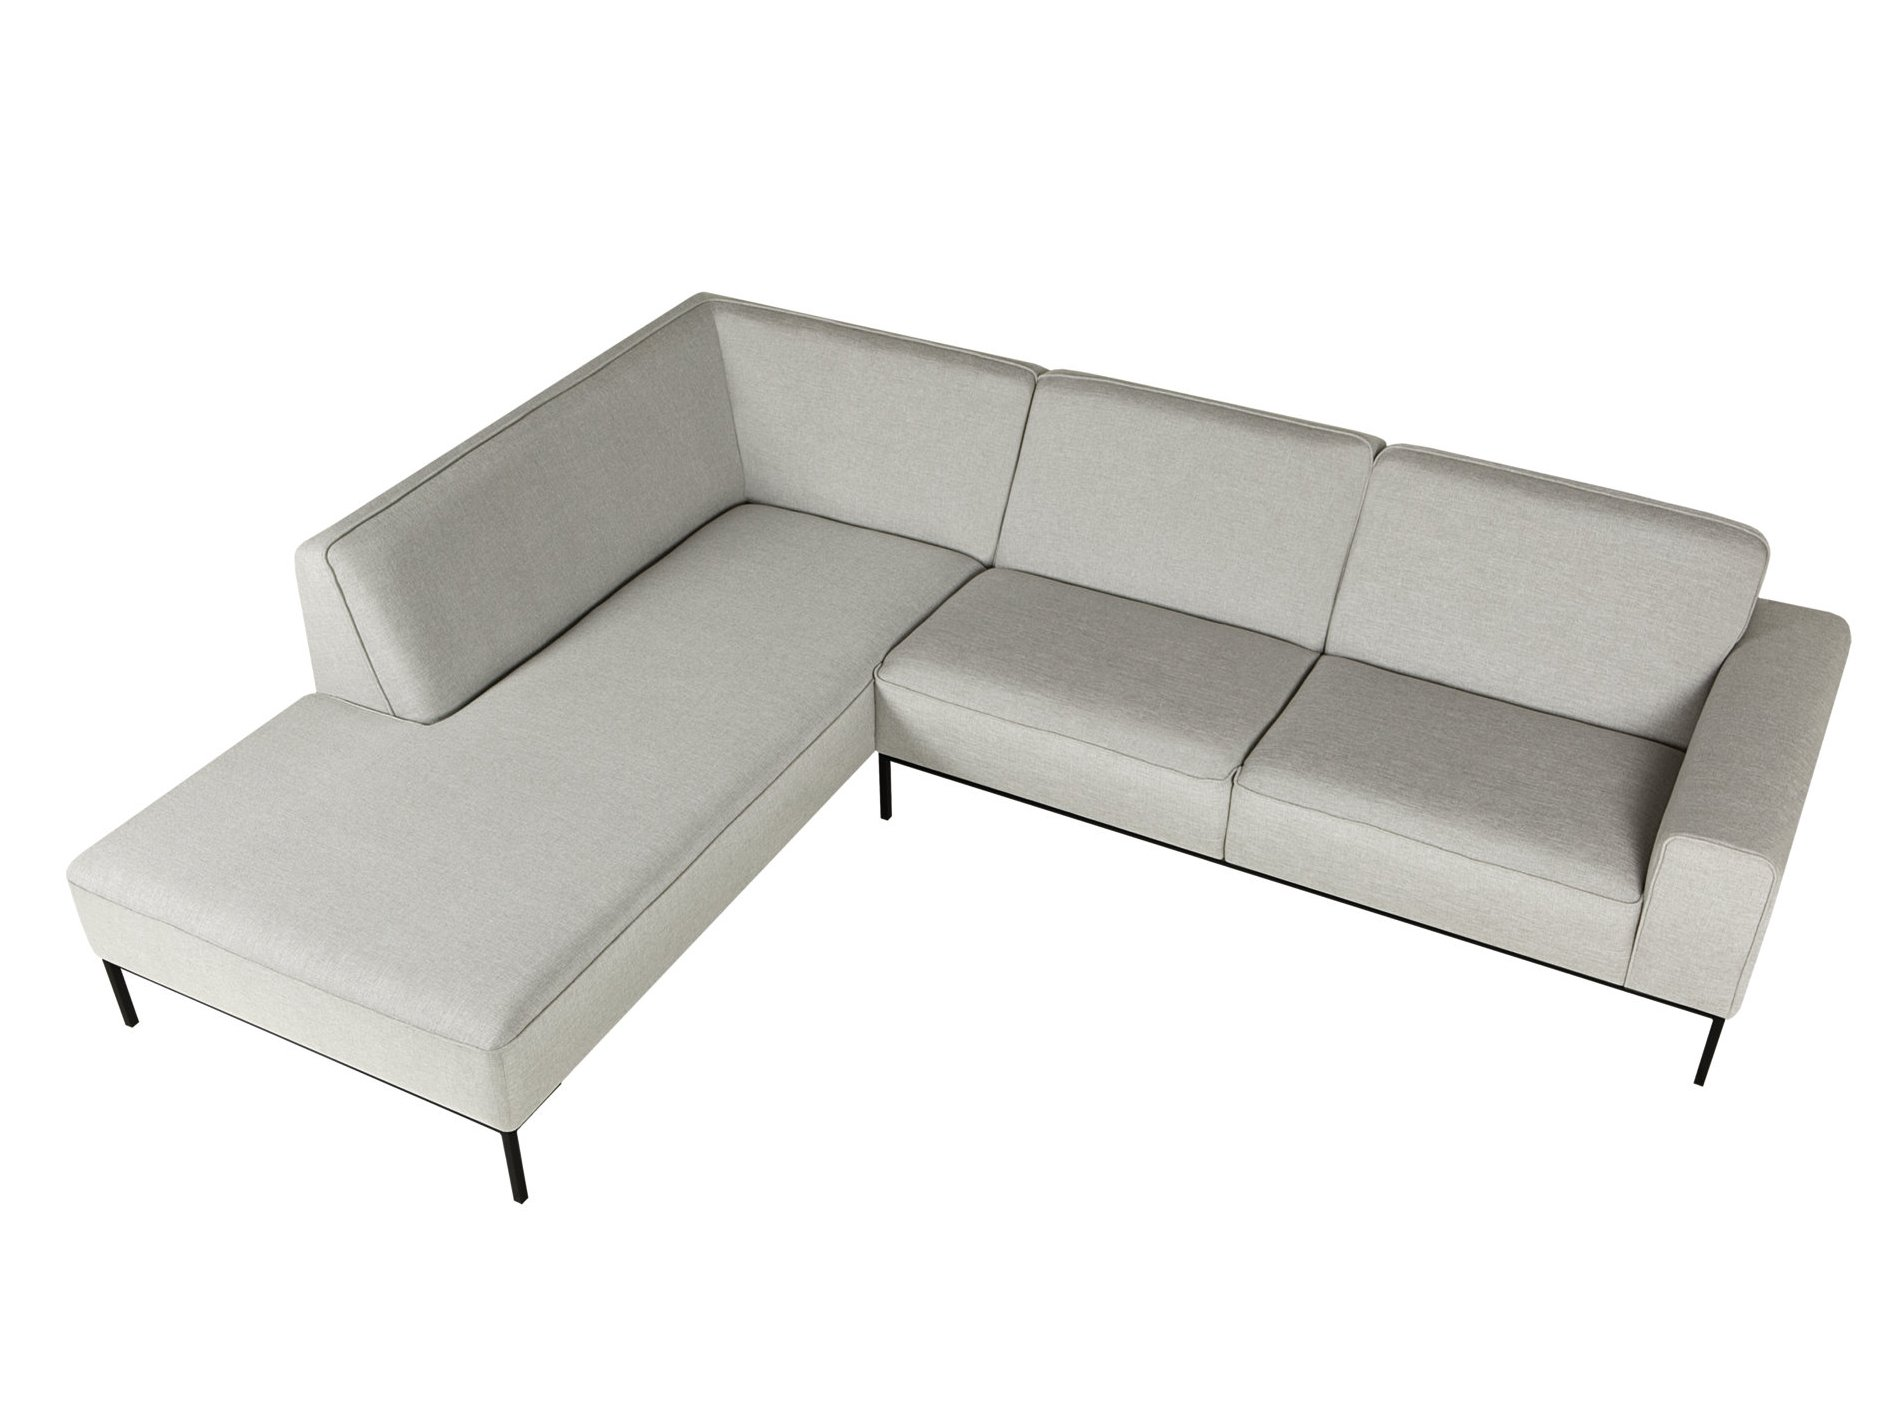 Ville sofa with chaise longue ville collection by sits for Chaise longue designer